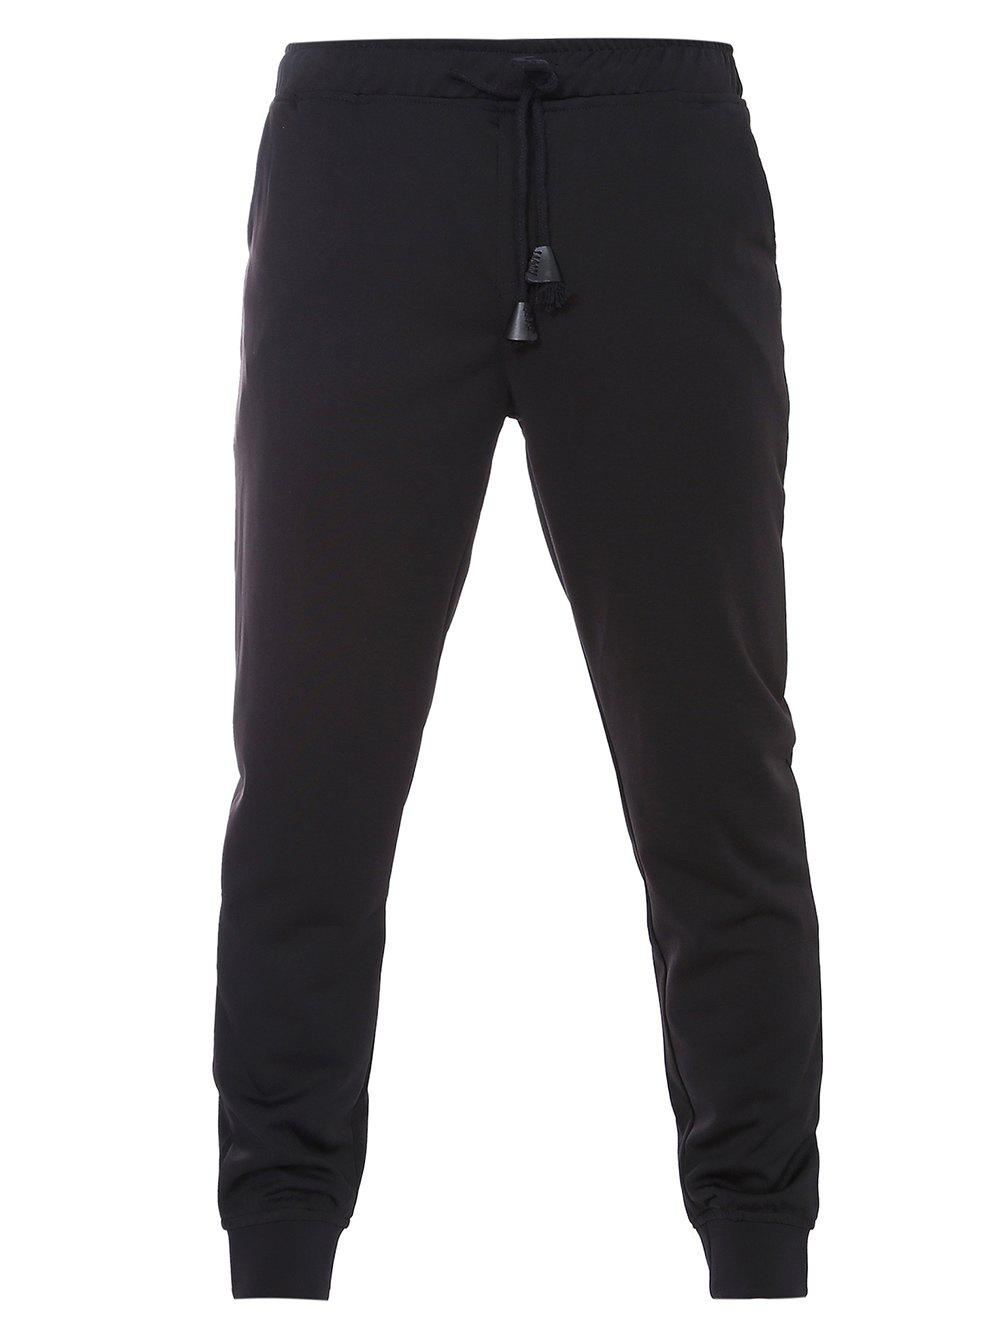 Drawstring Waistband Black Jogger Pants For Men 189721102